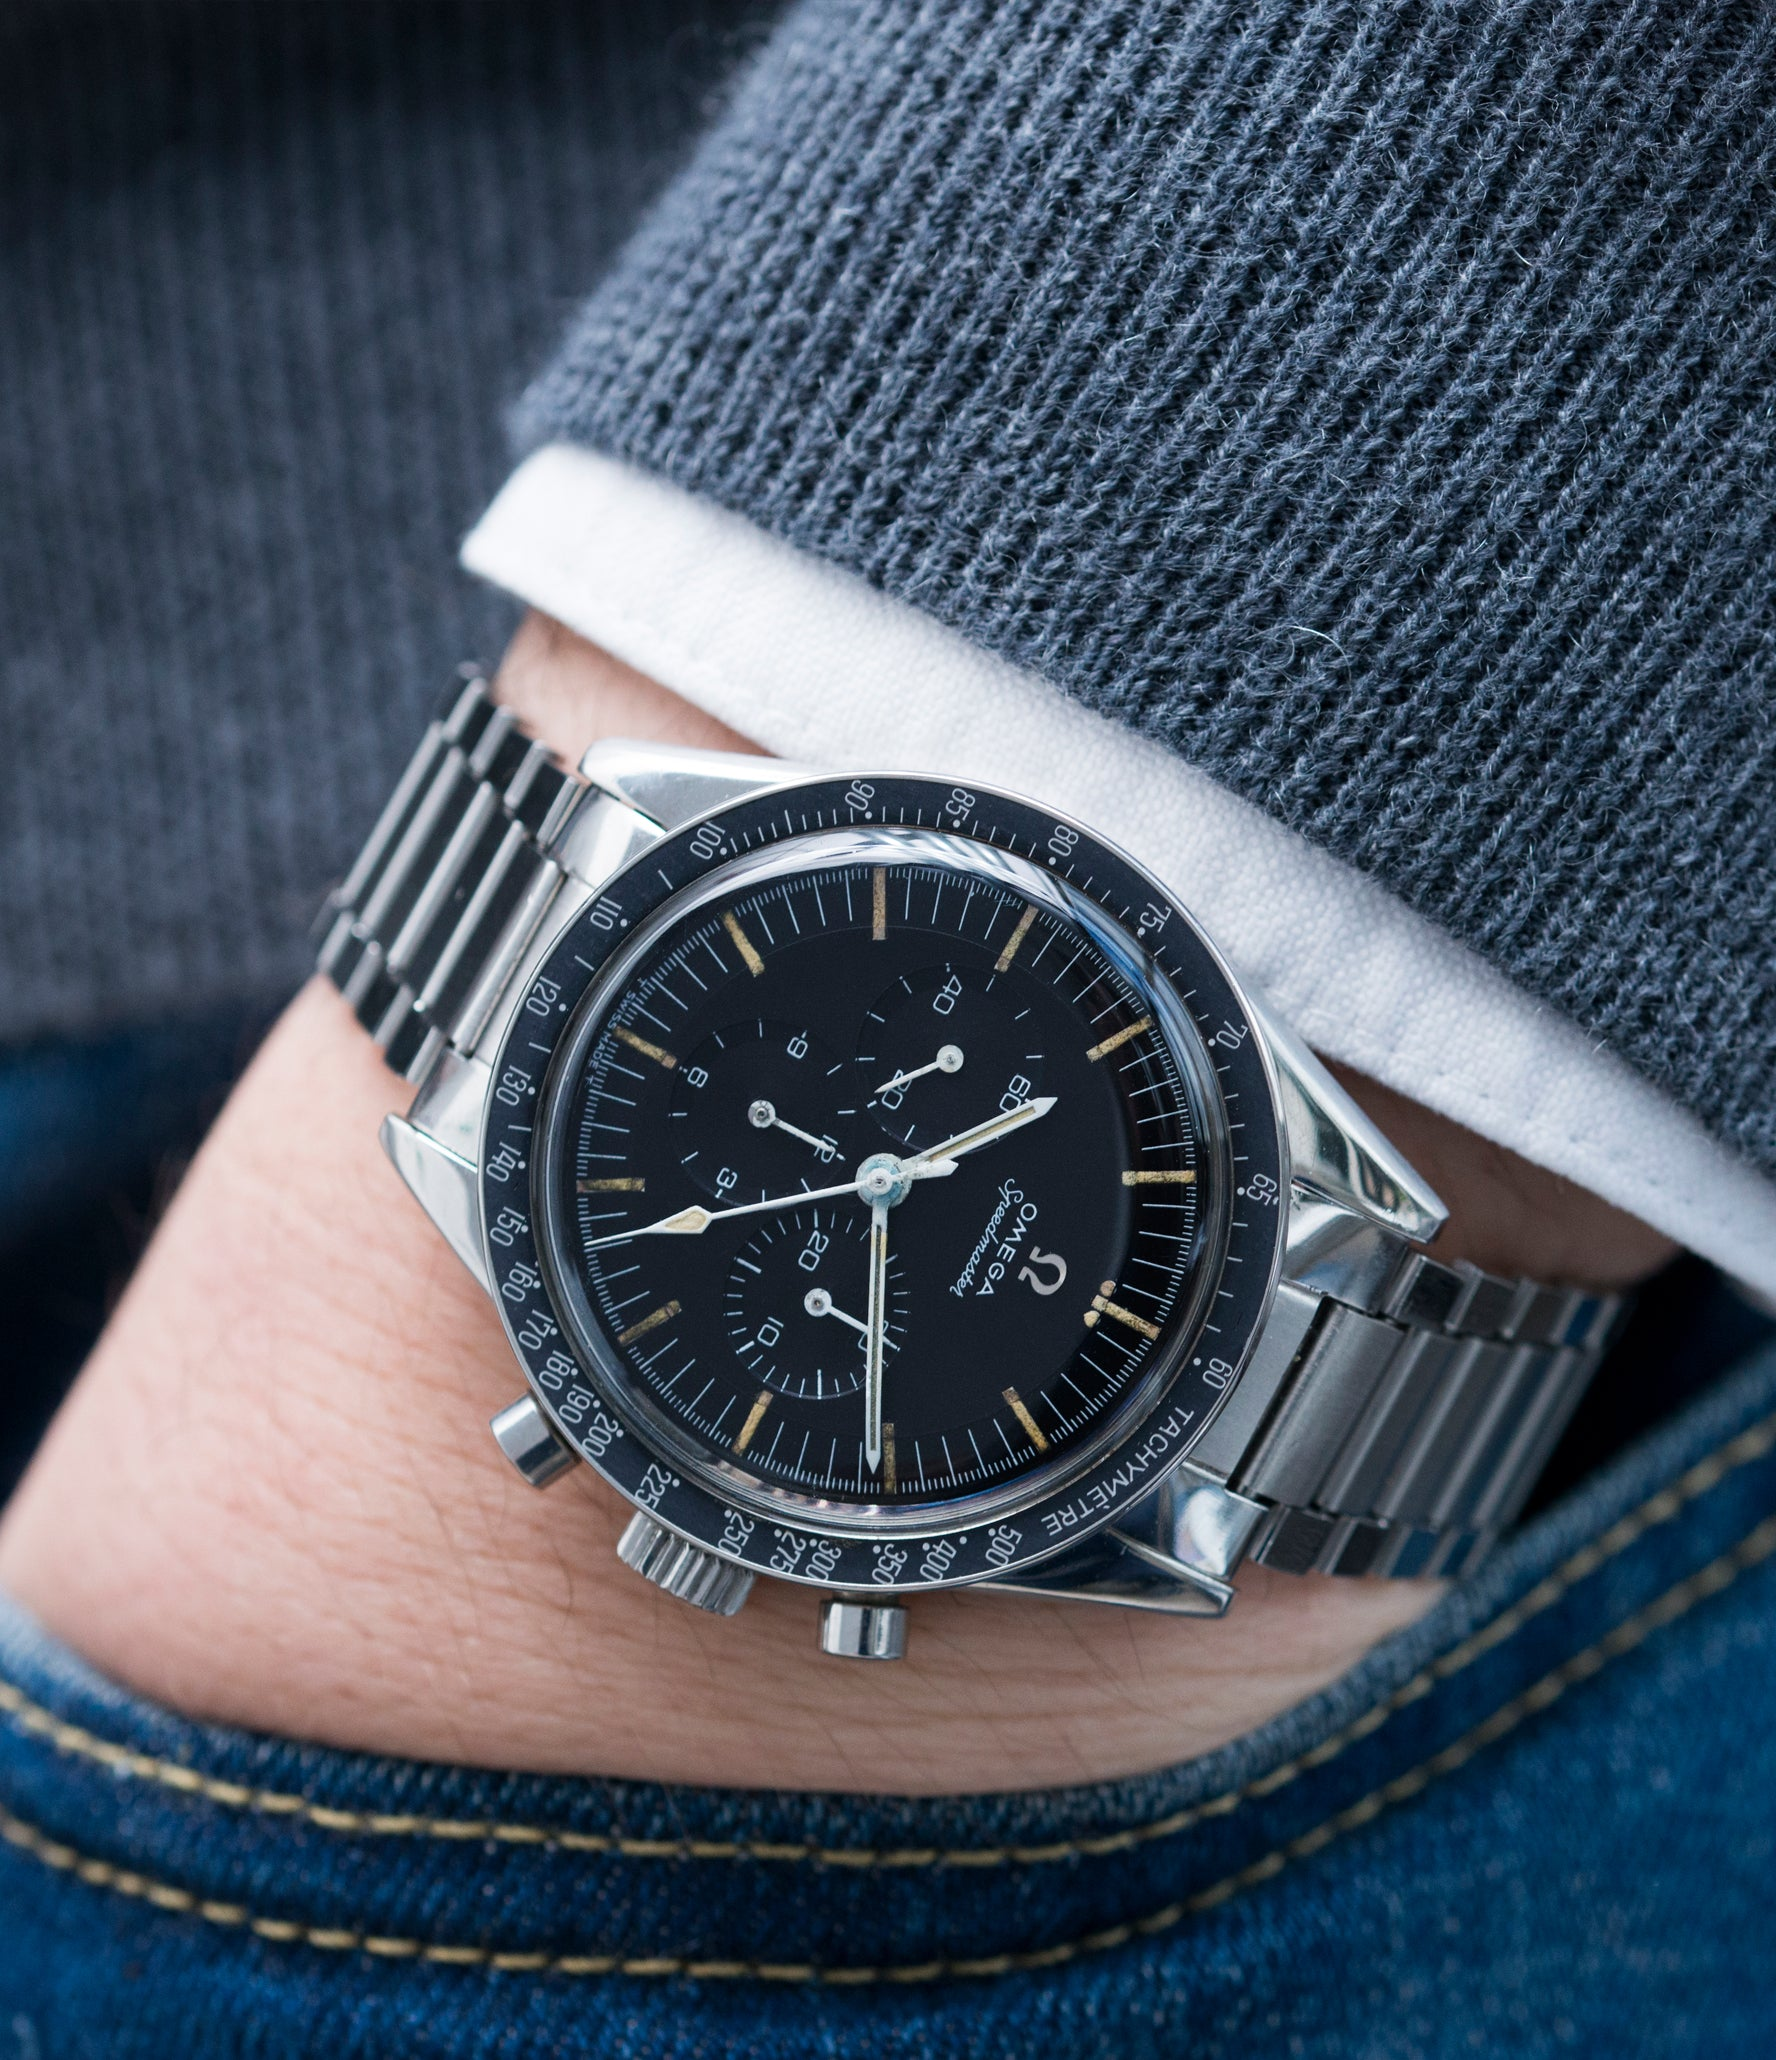 vintage chronograph Speedmaster 105.003 Pre-Professional Ed White Omega steel 7912 flat-link bracelet for sale online at A Collected Man UK specialist of rare vintage watches